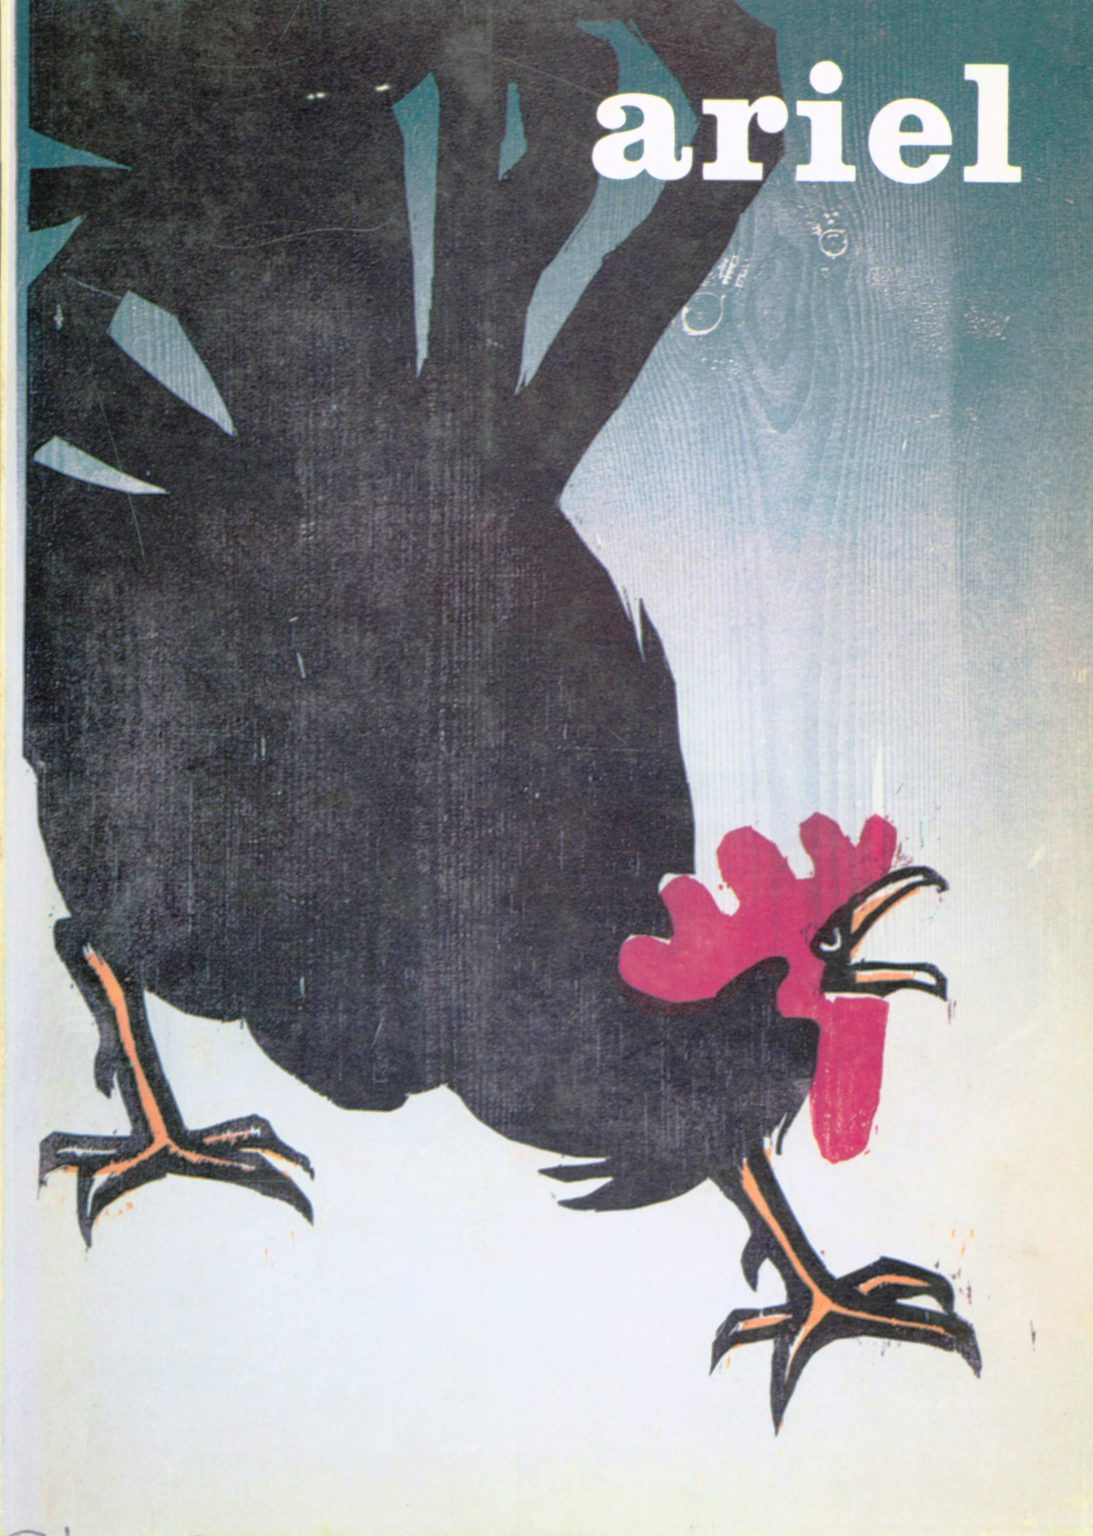 Ruster (1979) by Jacob Pins on the cover of Ariel magazin, vol. 87, 1987